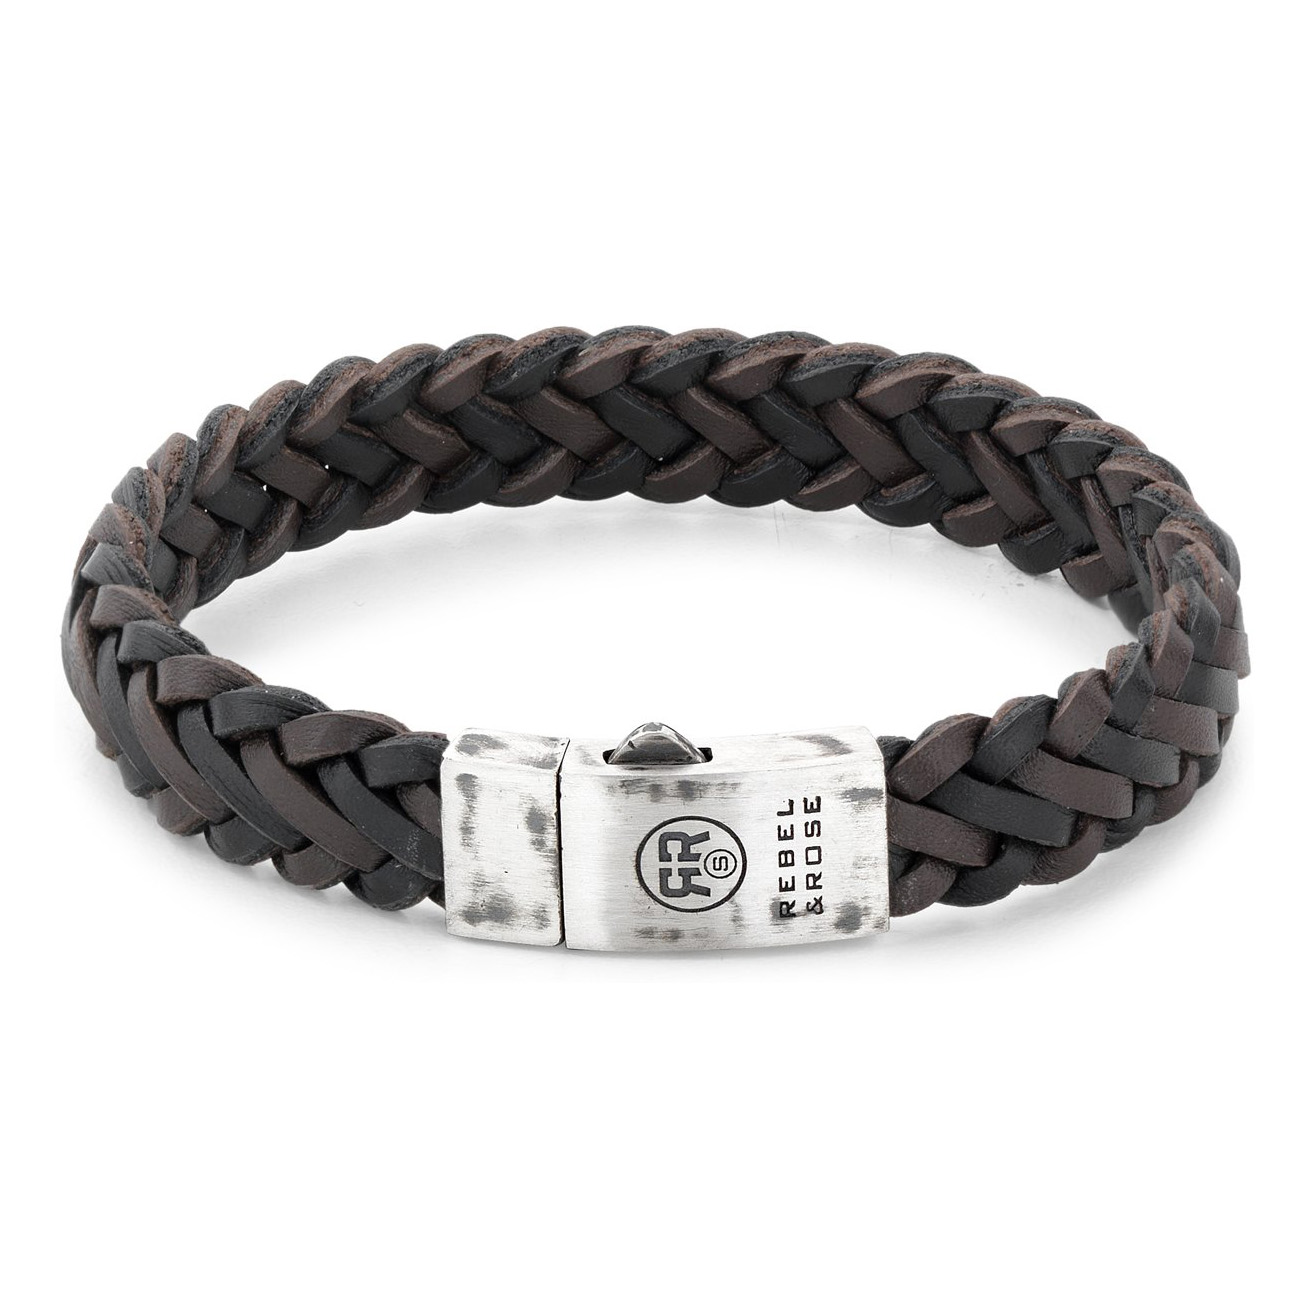 Rebel and Rose RR-L0075-S Armband Braided Raw Mat Black-Earth 21 cm